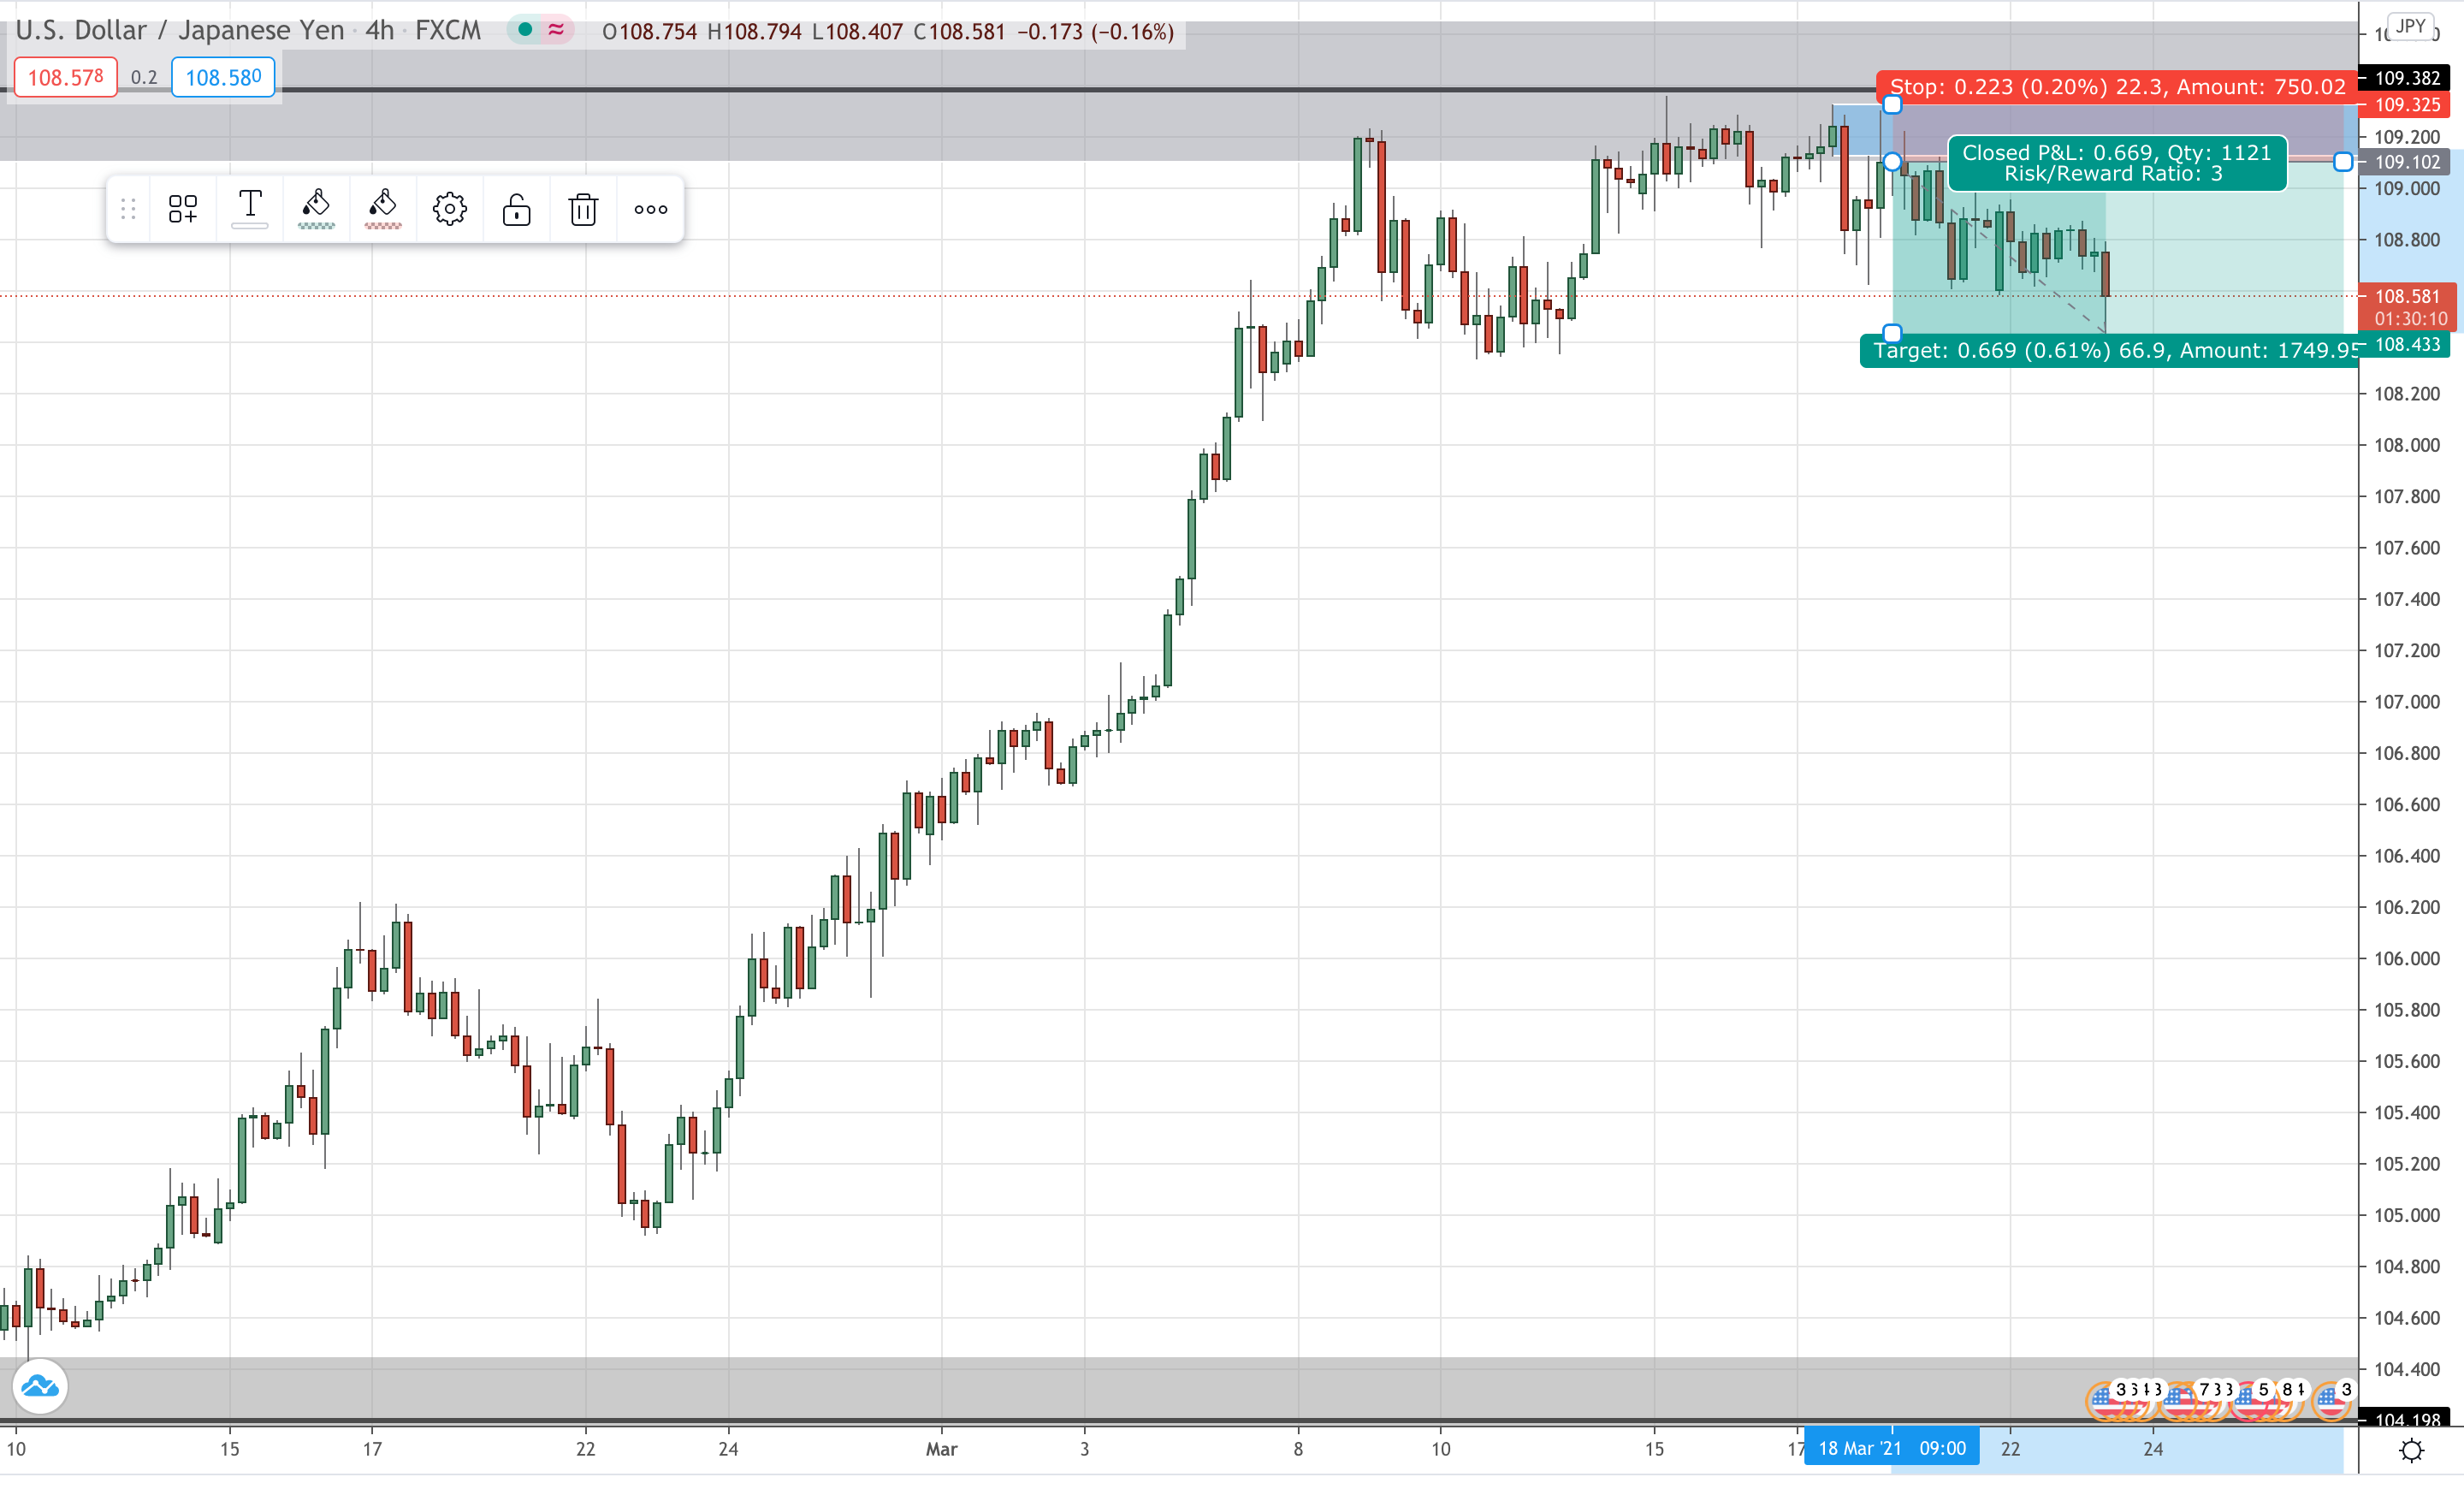 USD/JPY 4 Hourly Updated